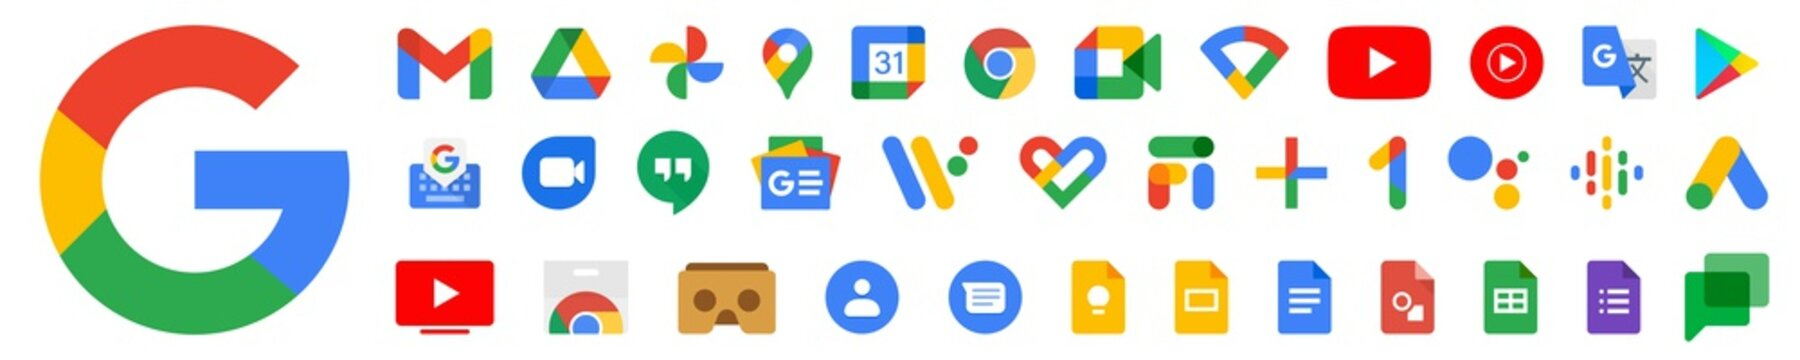 New Google product icons. Big collection of gmail, youtube and chrome symbols. Maps and music. Isolated new Google products of 2020. Editorial set. Rivne, Ukraine - November 12, 2020. EPS 10